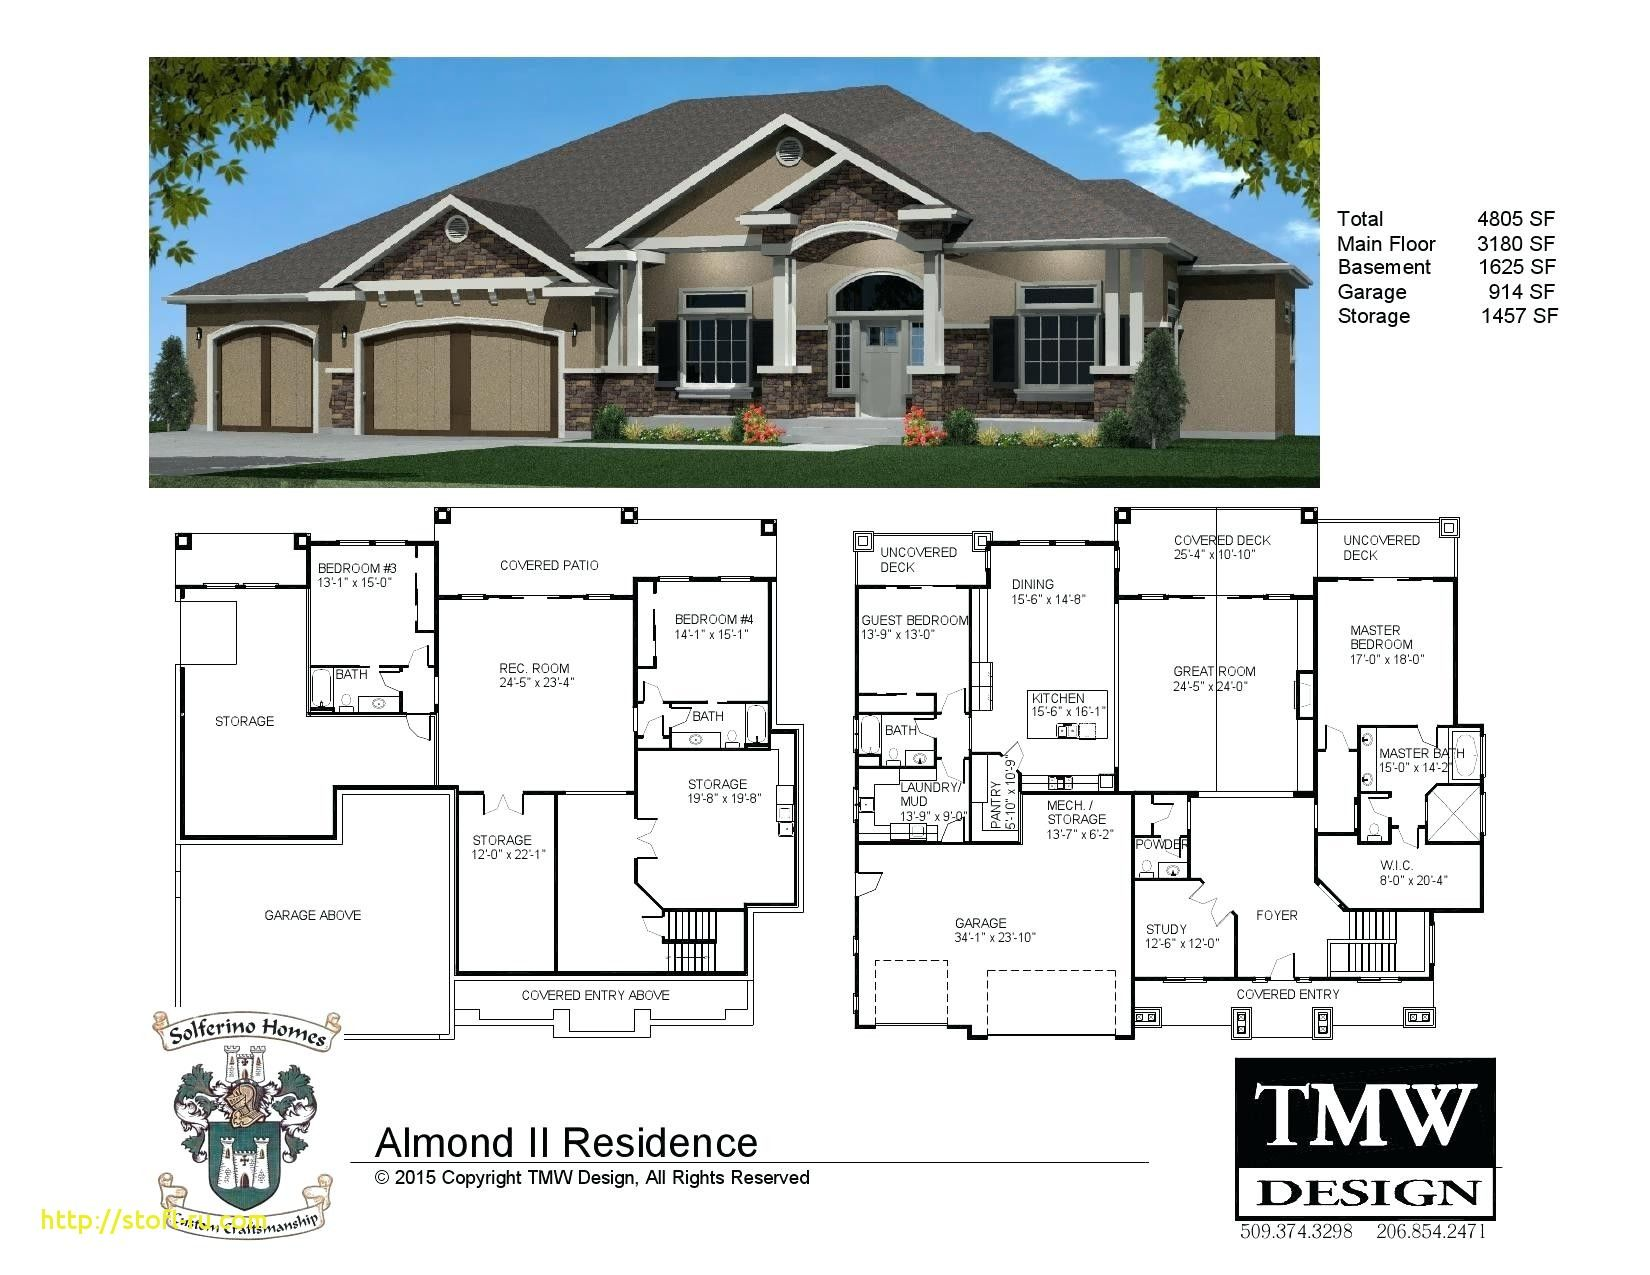 Modern House Plans Botswana - Modern Style House Design Ideas ... on ranch blueprints, simple ranch floor plans, simple square house floor plans, ranch home design plans, simple one floor house plans, ranch home drawings, ranch home floor designs, ranch home interior, ranch home floor plans, ranch home pricing, ranch home construction plans, simple home floor plans, ranch house plans, ranch home elevations,